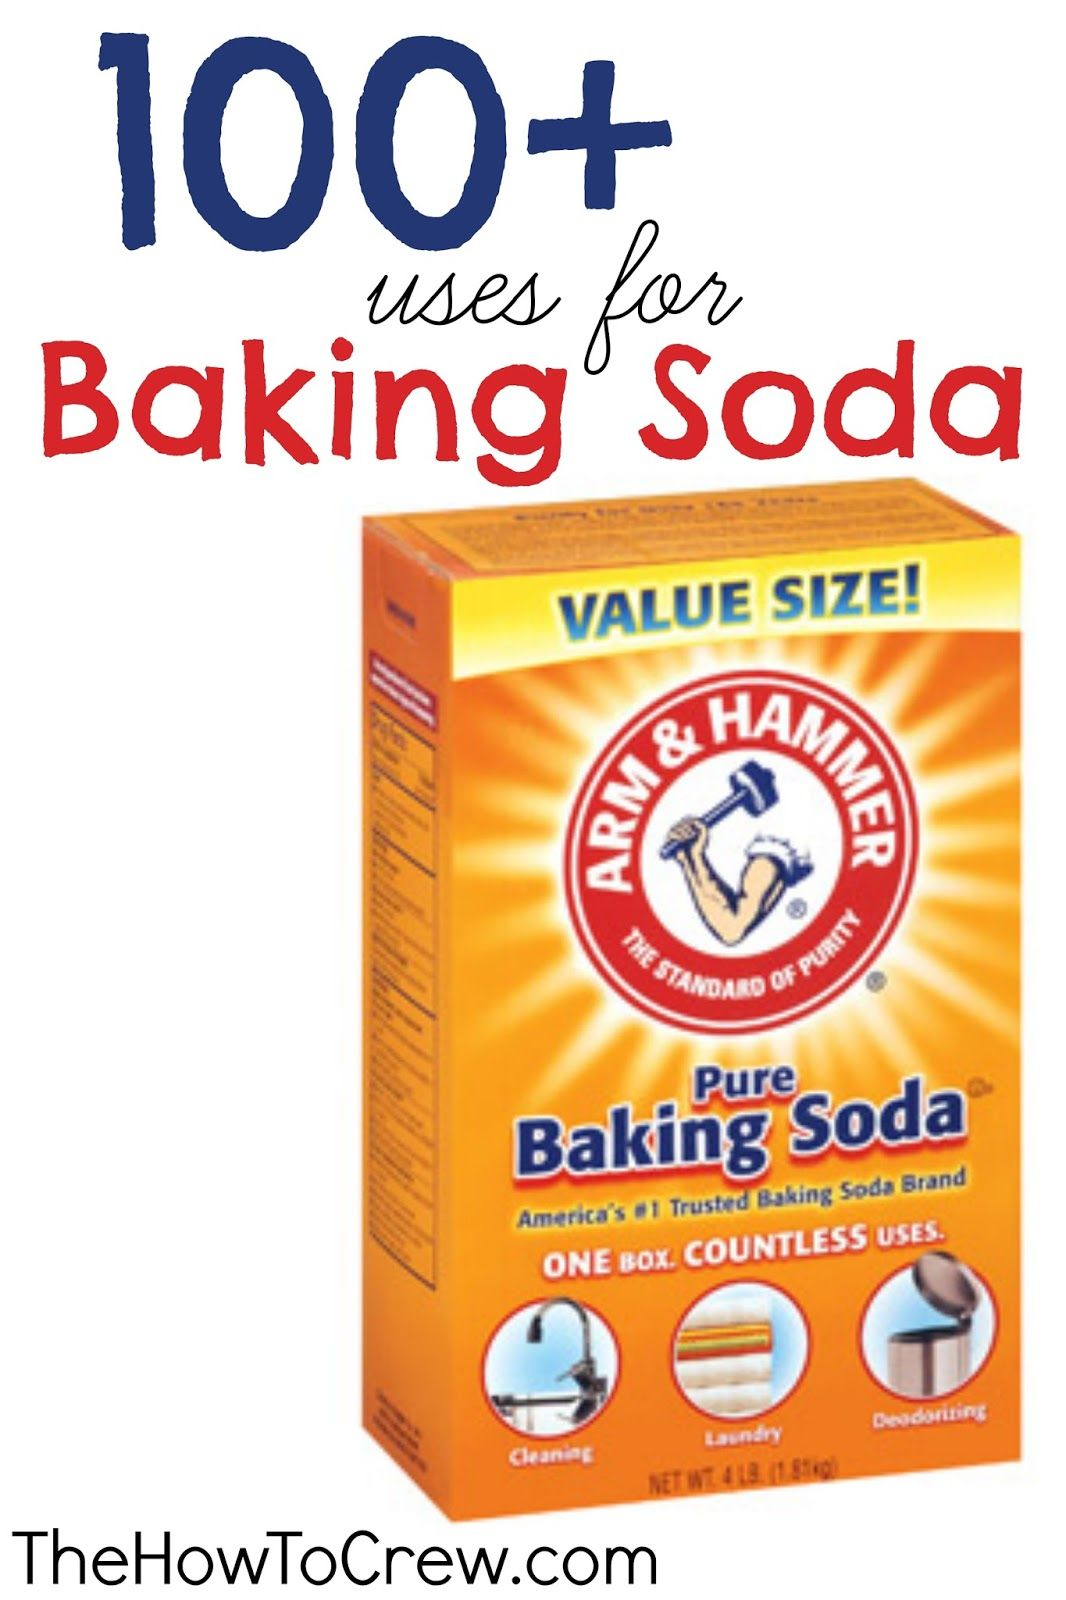 100+ Ways How To Use Baking Soda.Tips and tricks using baking soda to